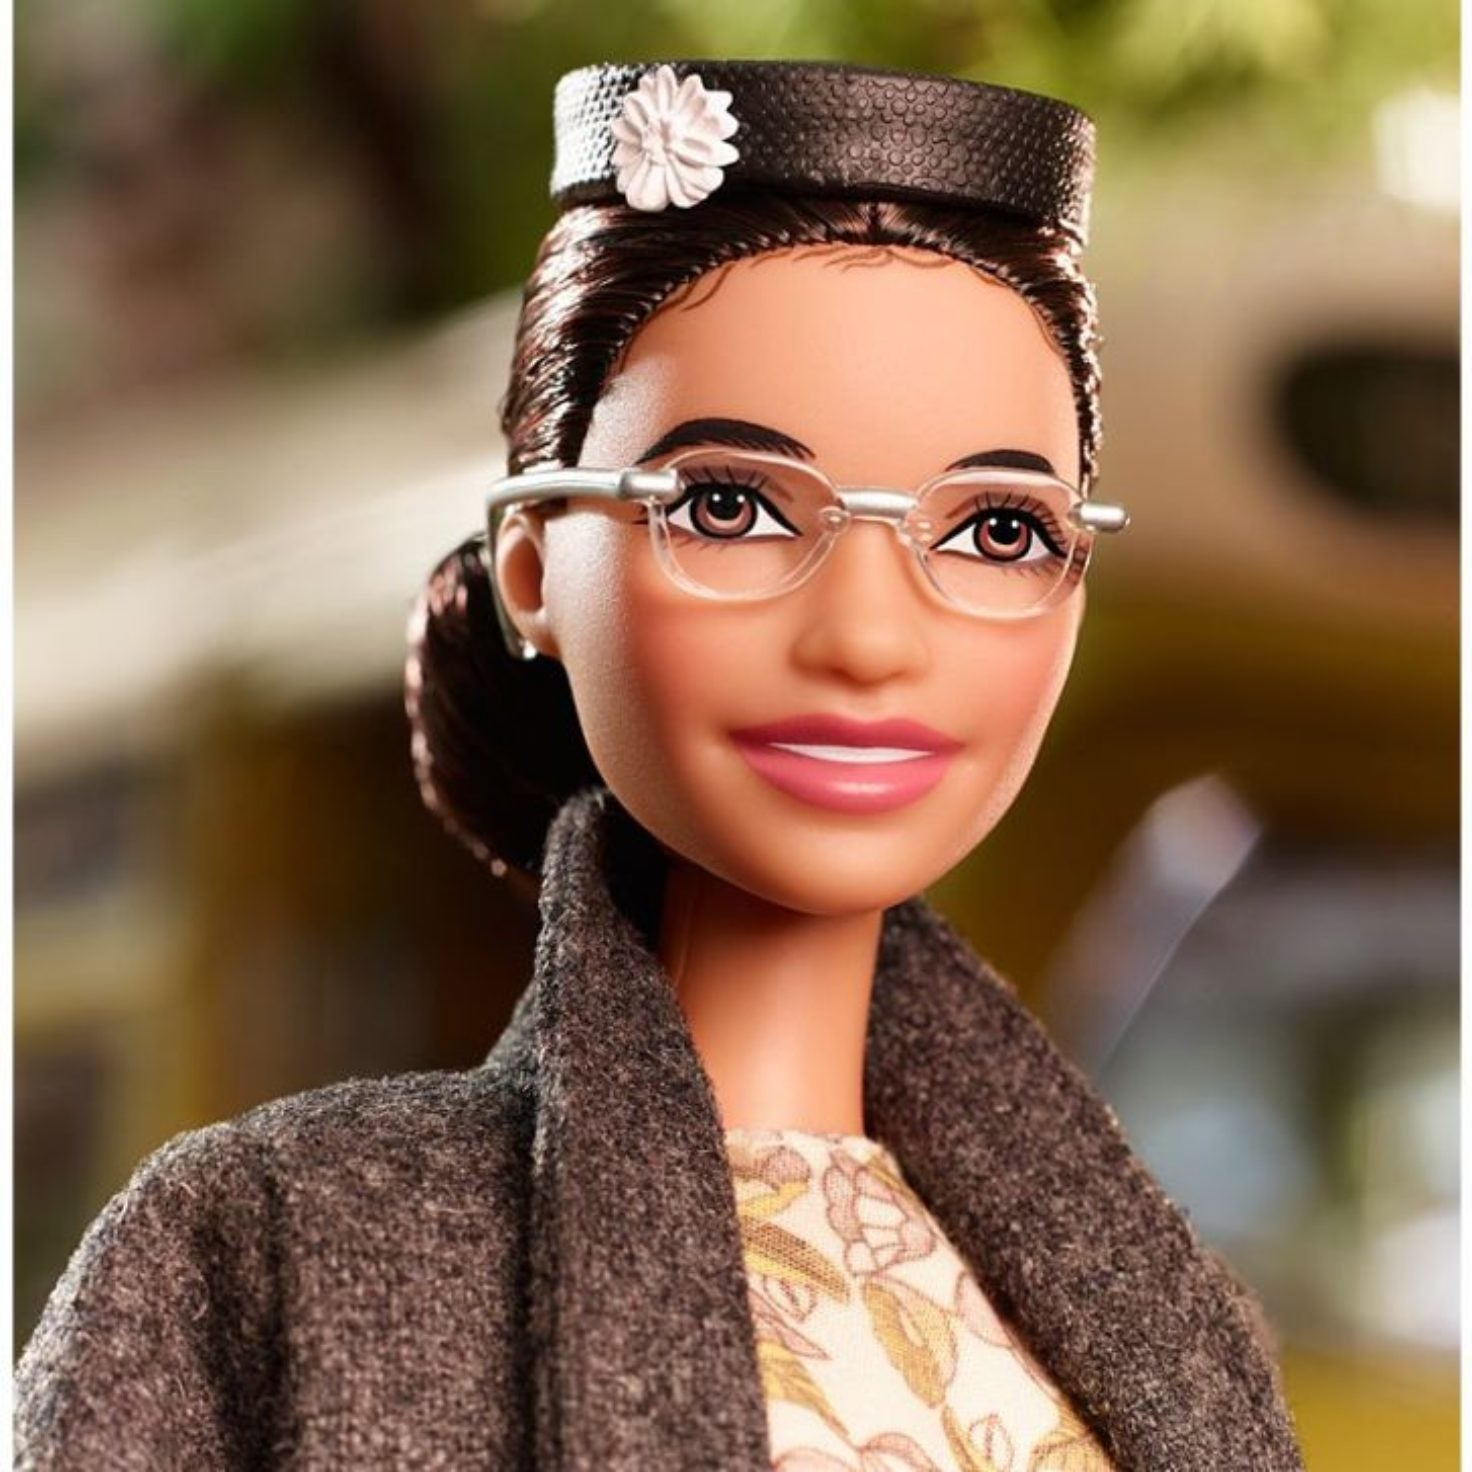 Barbie Launches New Rosa Parks Doll